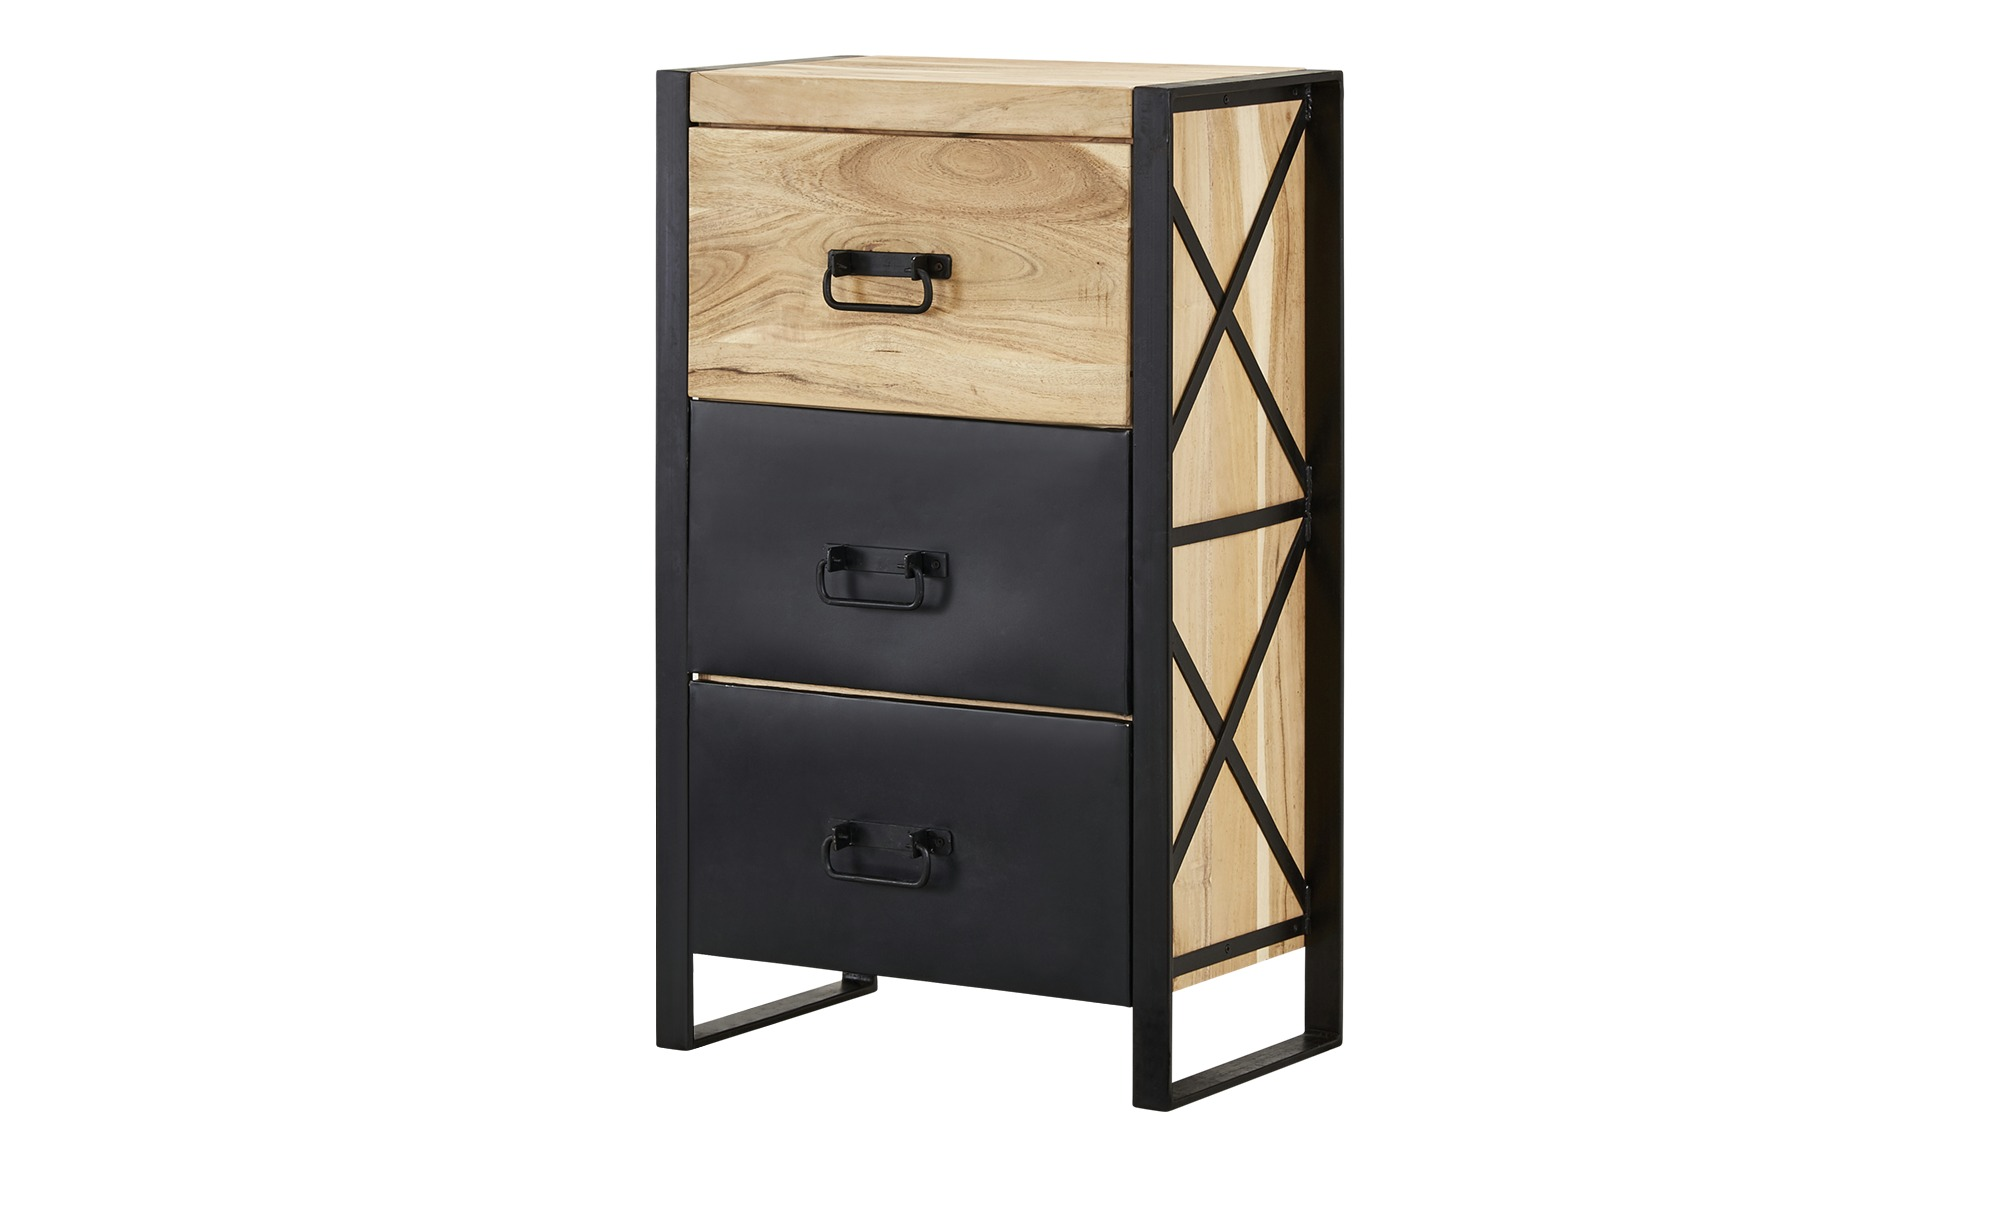 kommode queens breite 60 cm h he 98 cm online kaufen bei. Black Bedroom Furniture Sets. Home Design Ideas